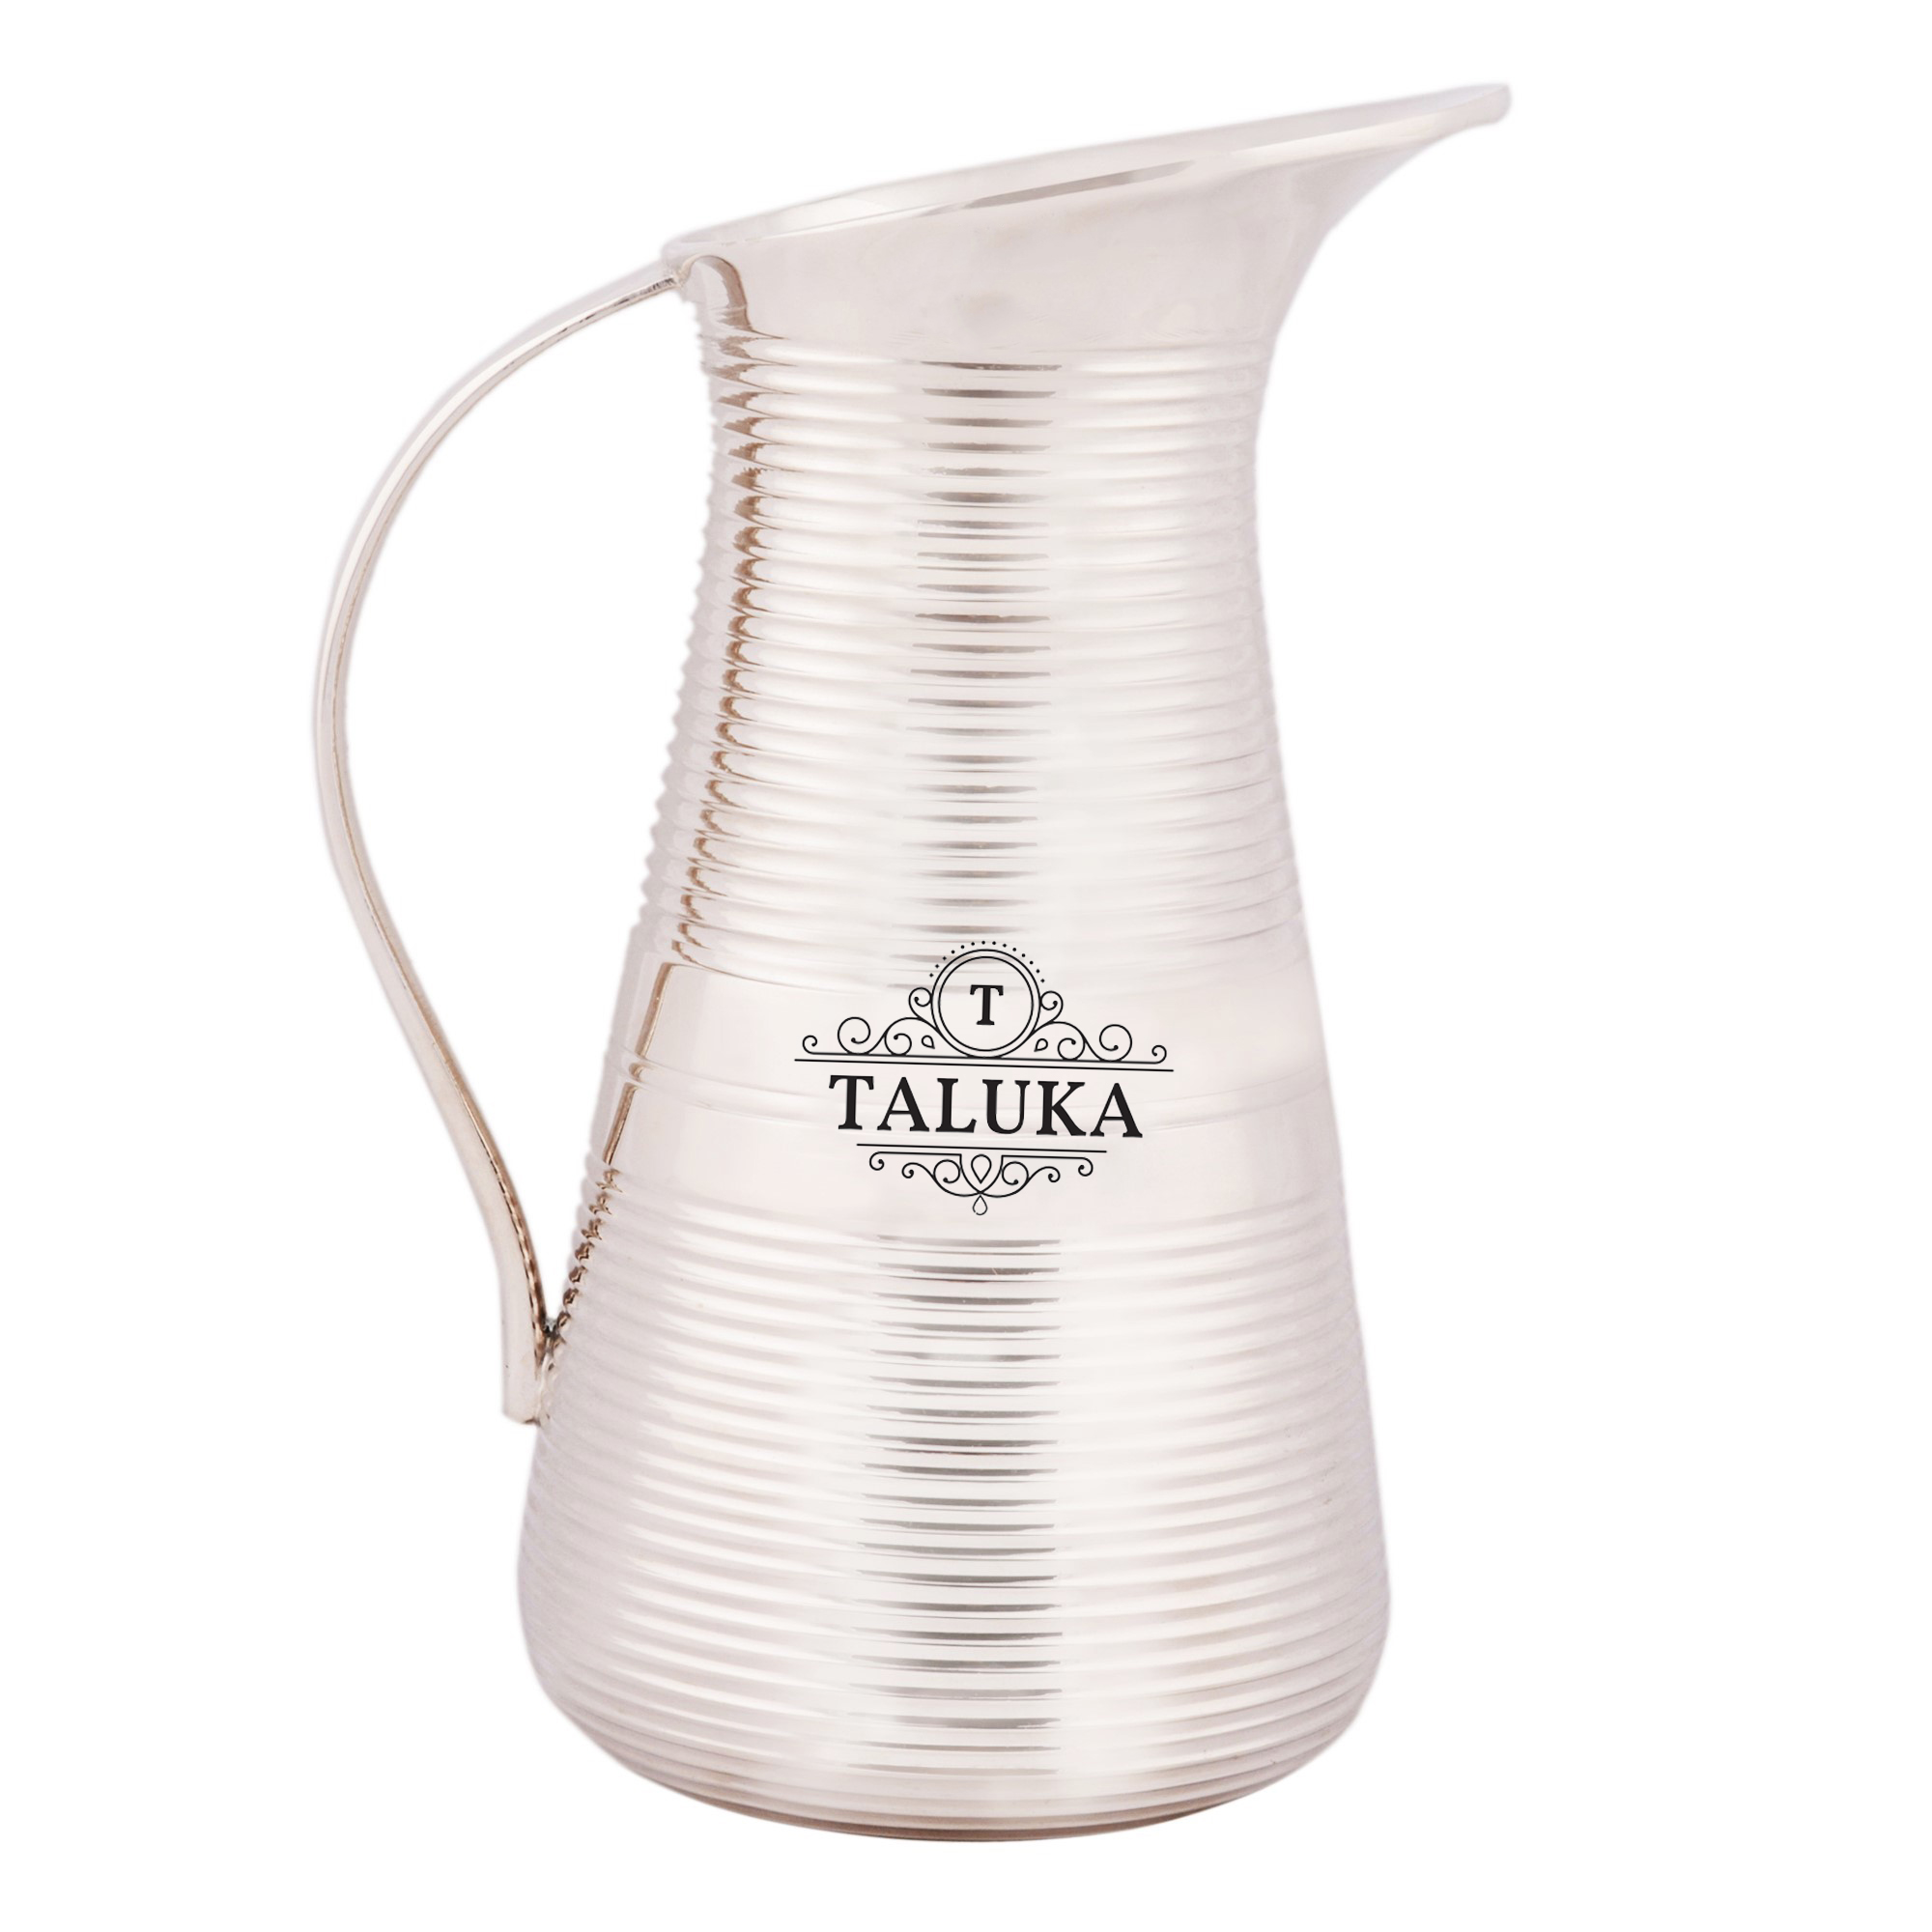 Brass Silver Plated Jug Water Pitcher For Storage For Home Hotel Gifting Purpose 1500 ML